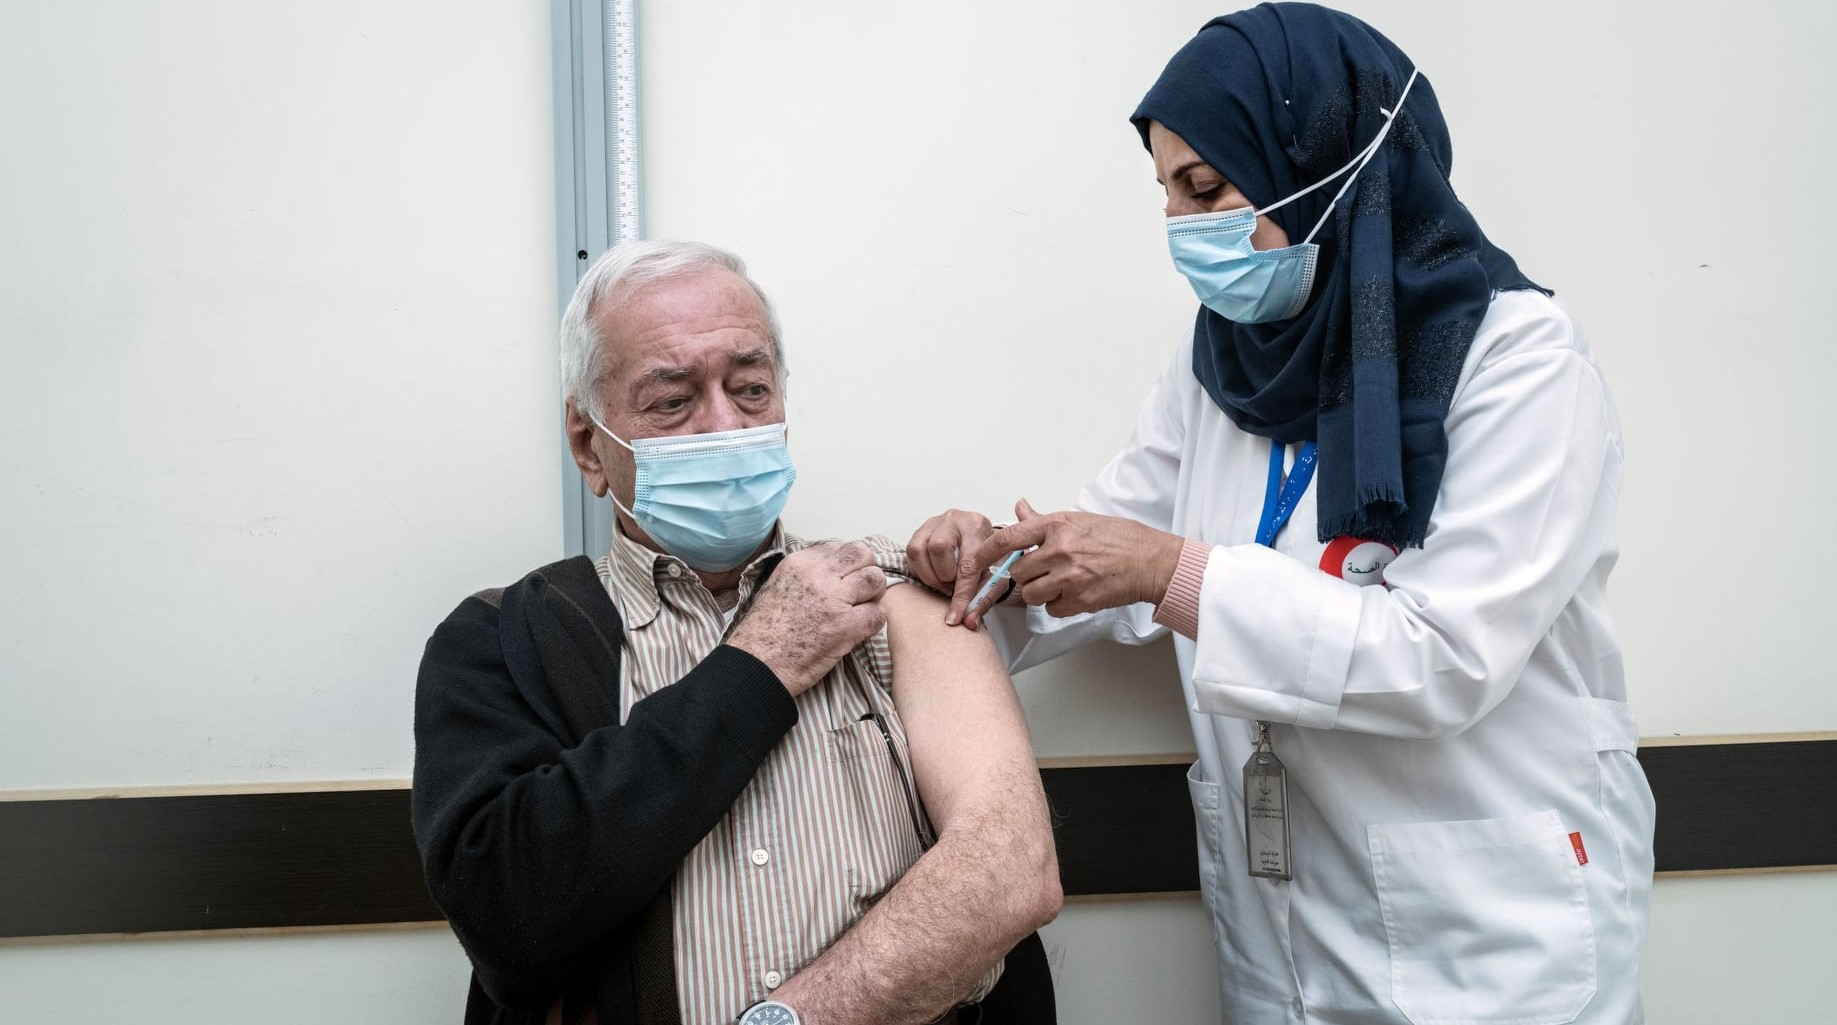 A Palestinian resident of the West Bank receives a vaccination against COVID-19.